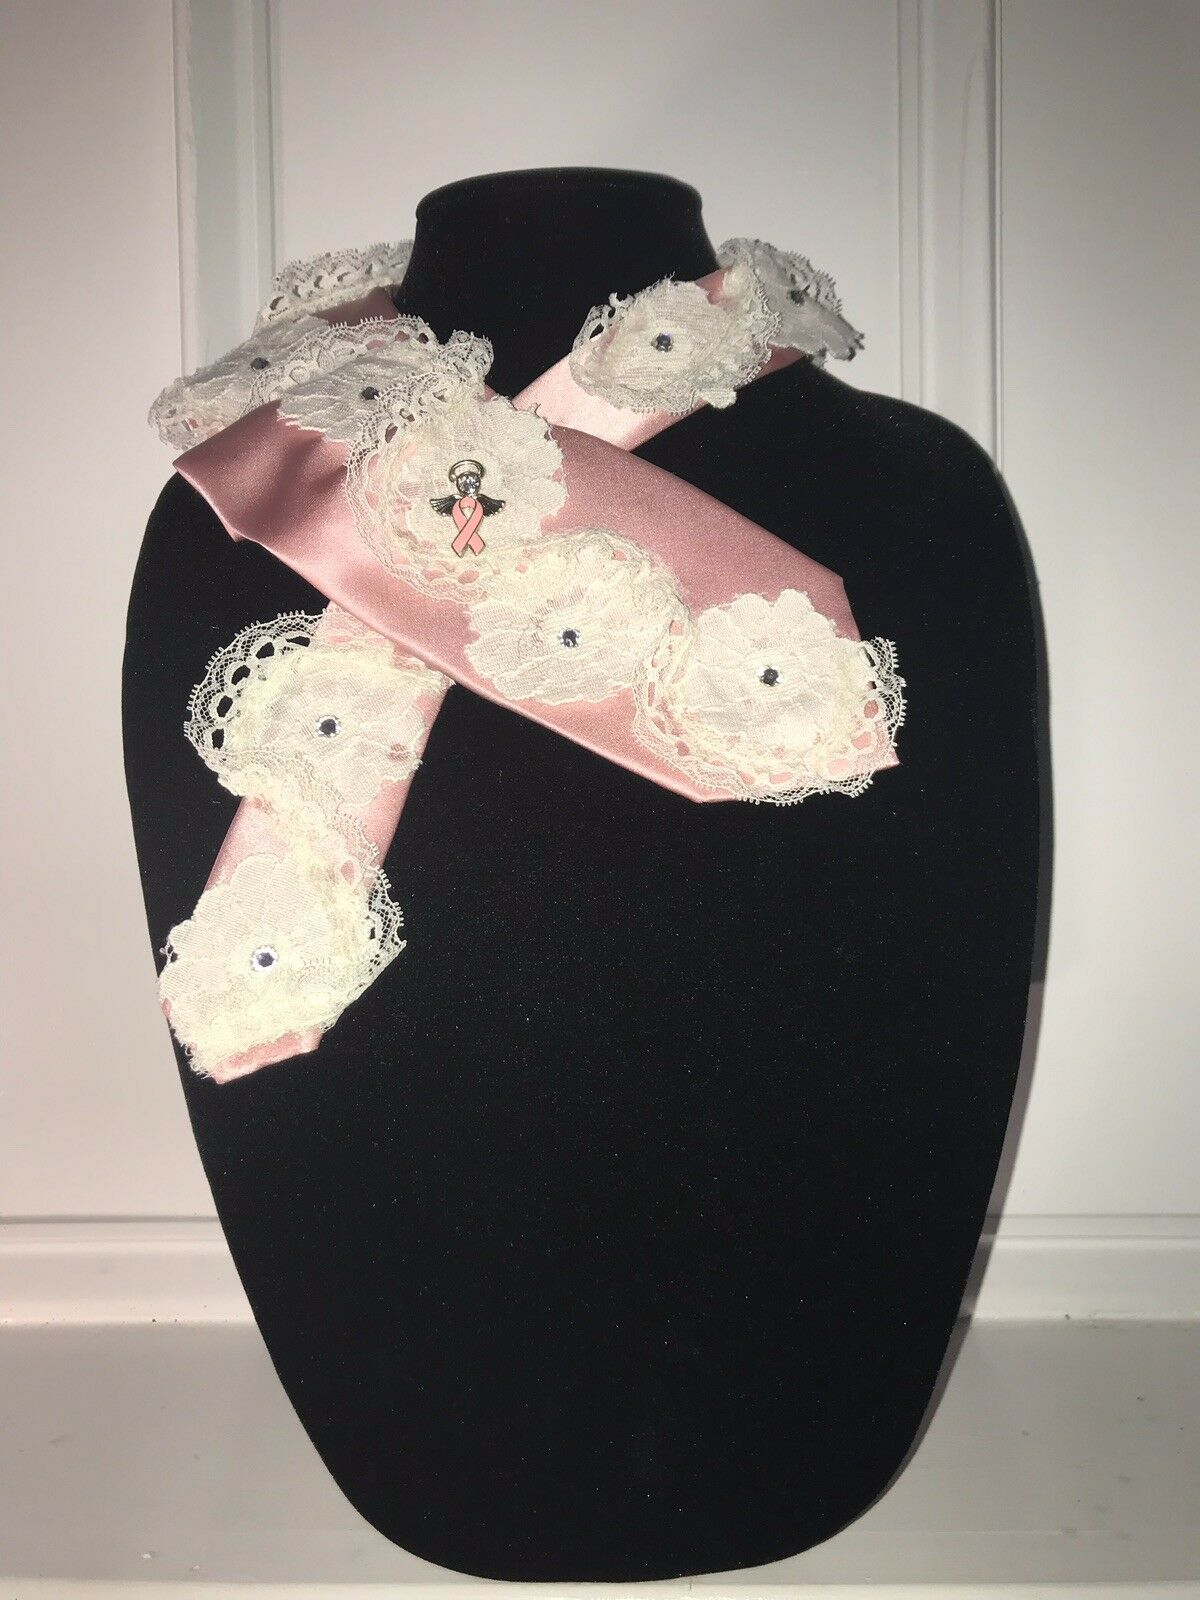 Women's Accessories Tie Necklace, Necklace, Collar, Breast Cancer